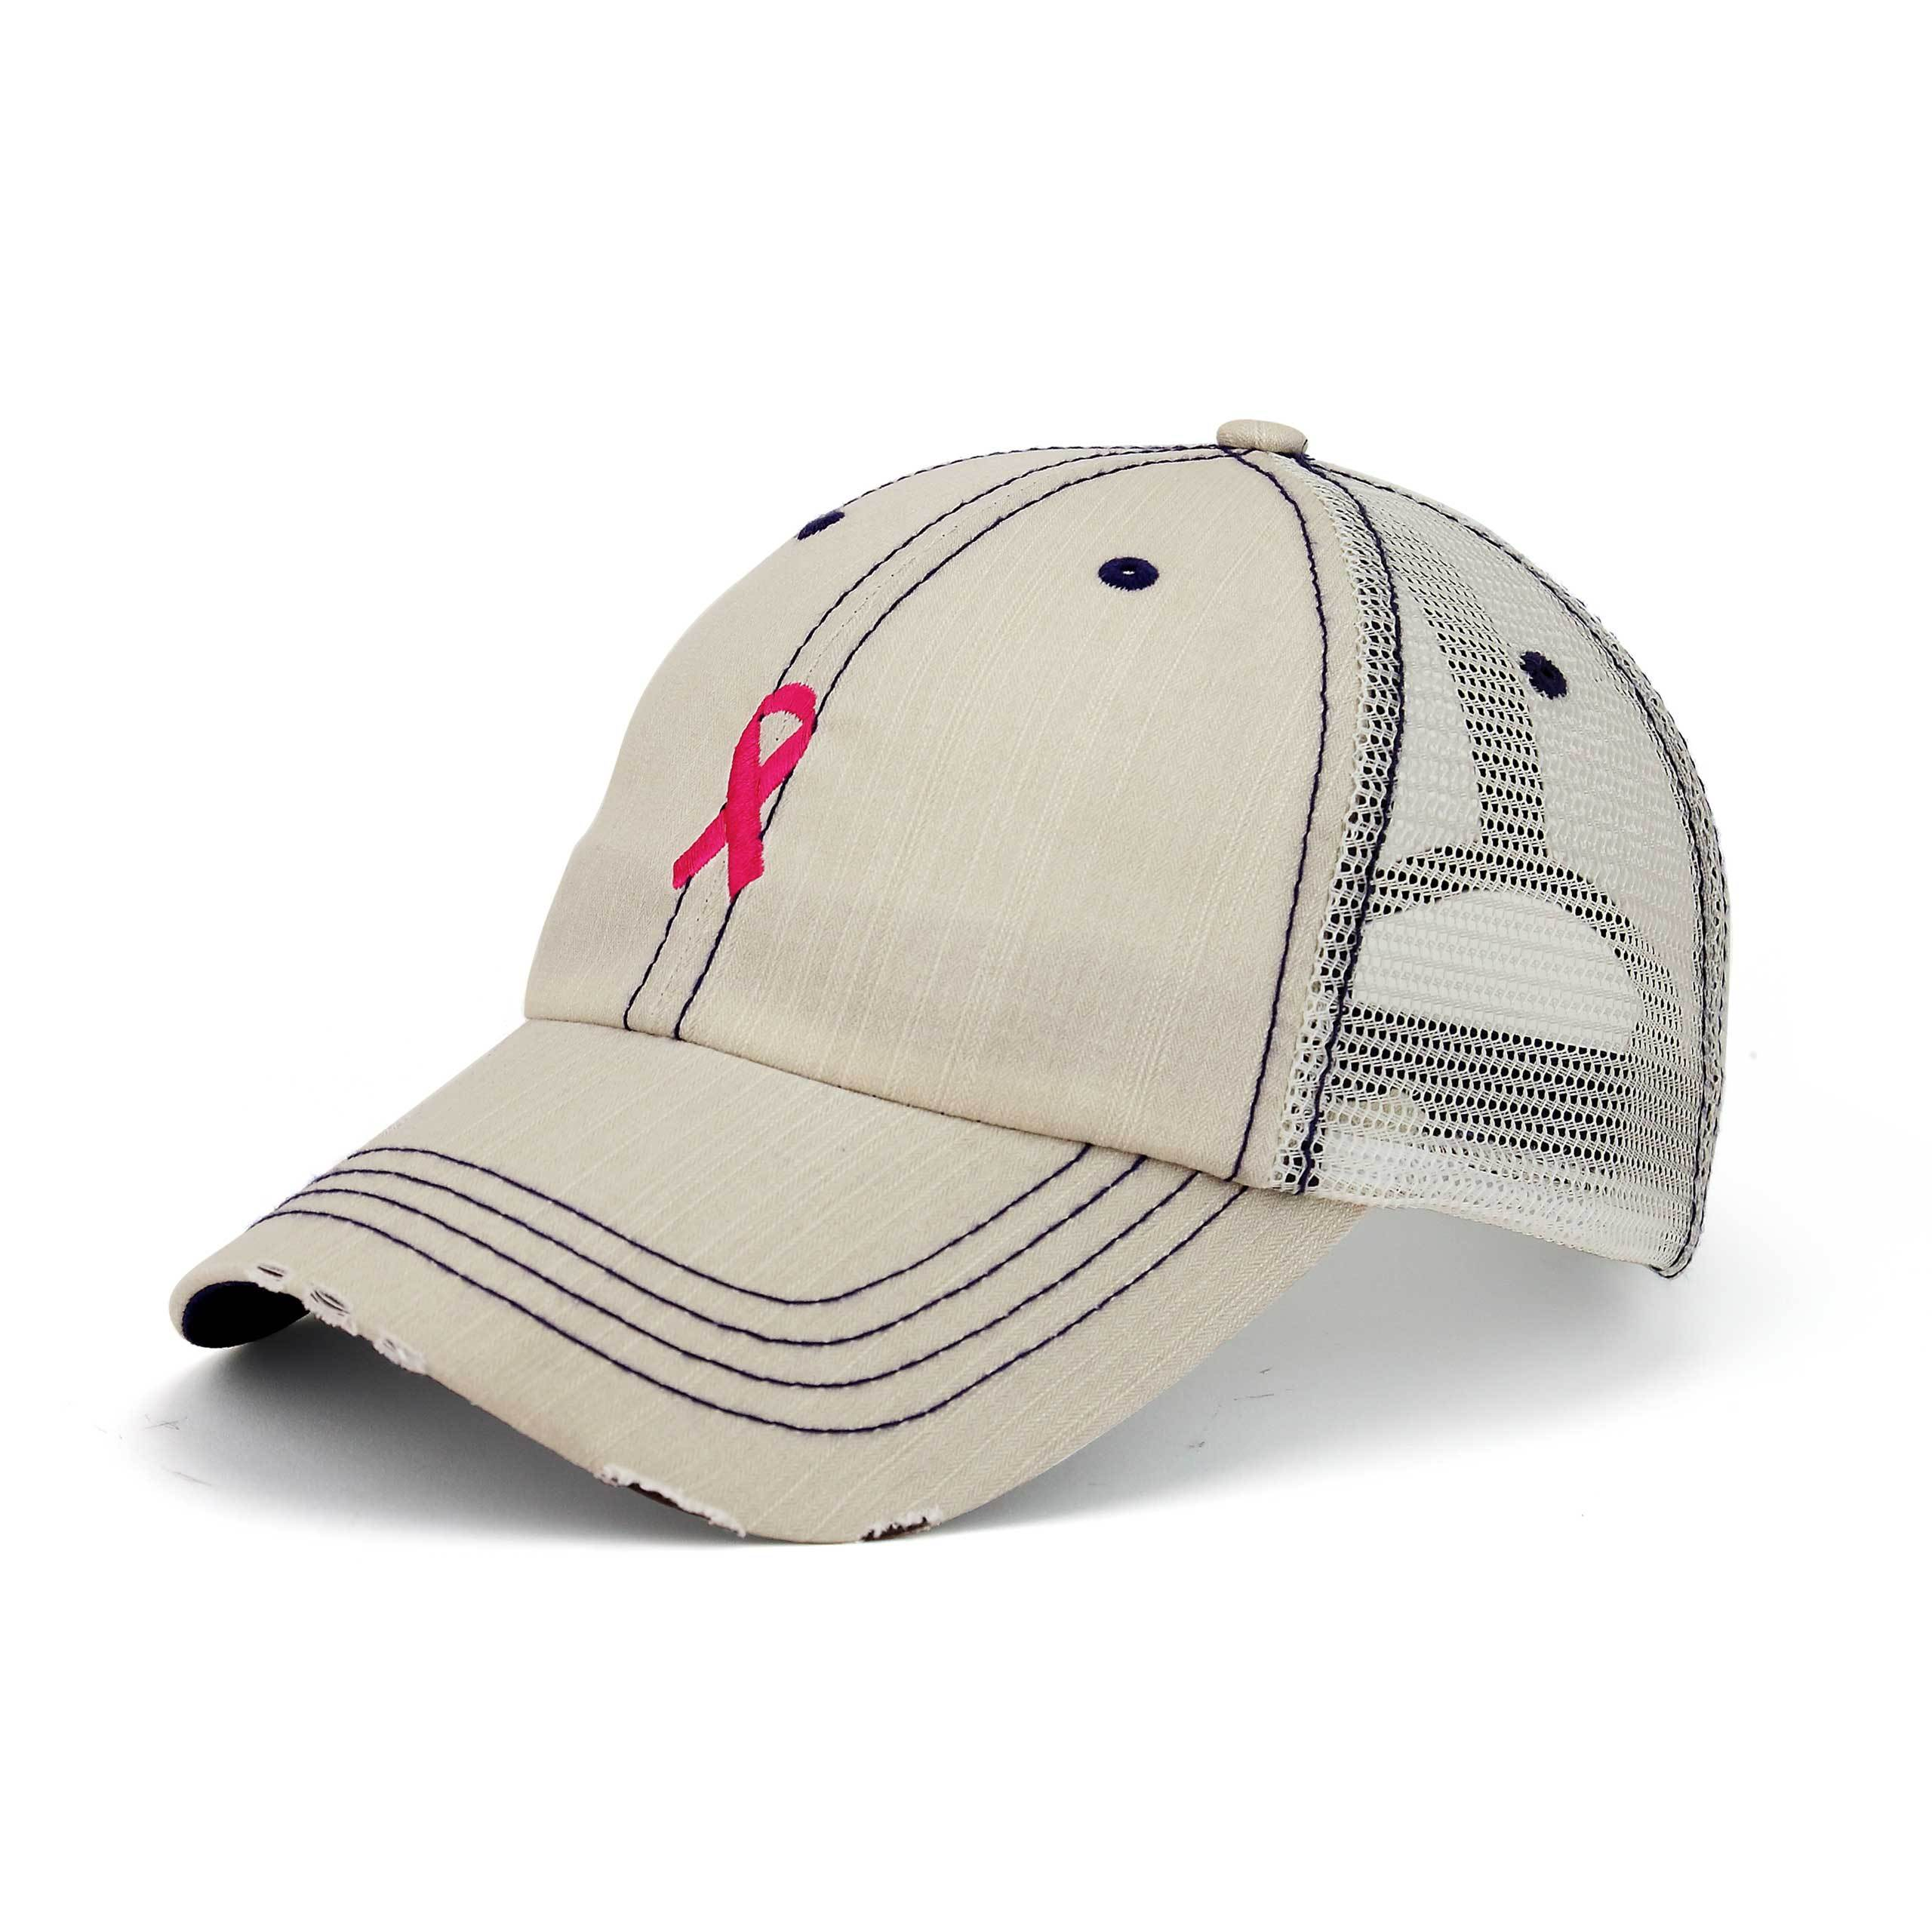 Pink Ribbon Breast Cancer Awareness Herringbone Cotton Cap